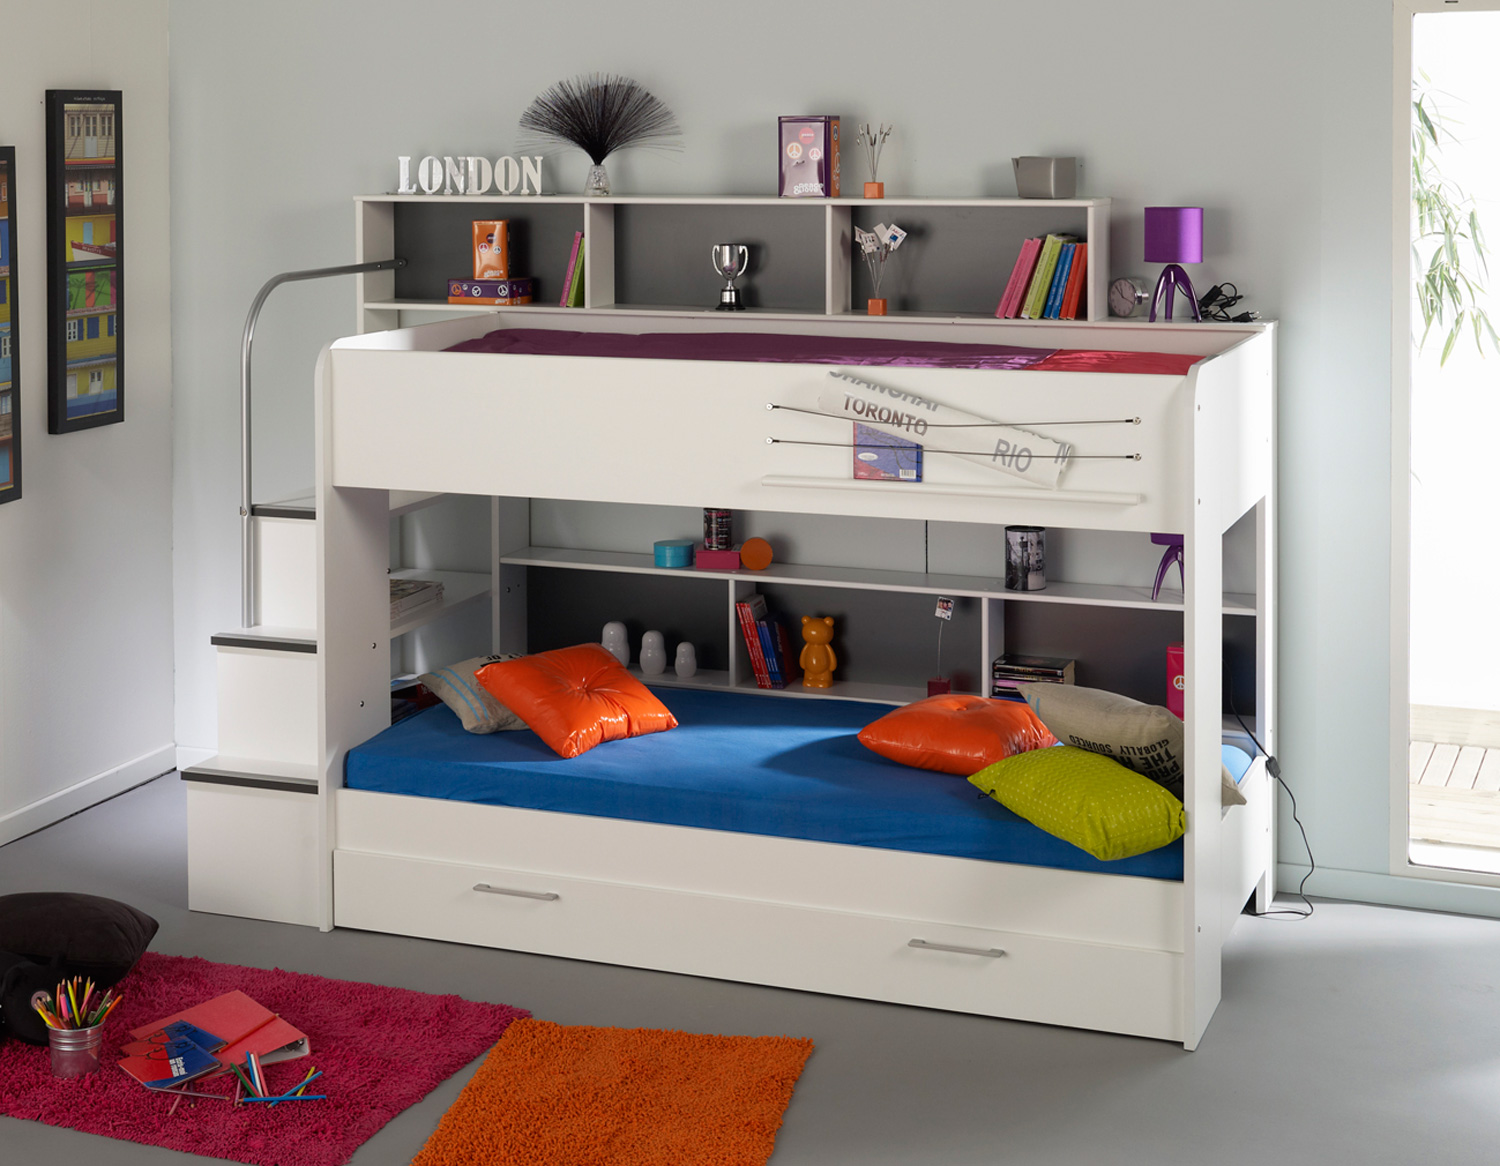 childrens bunk beds white bunk beds for kids with storage area KLDPZKE